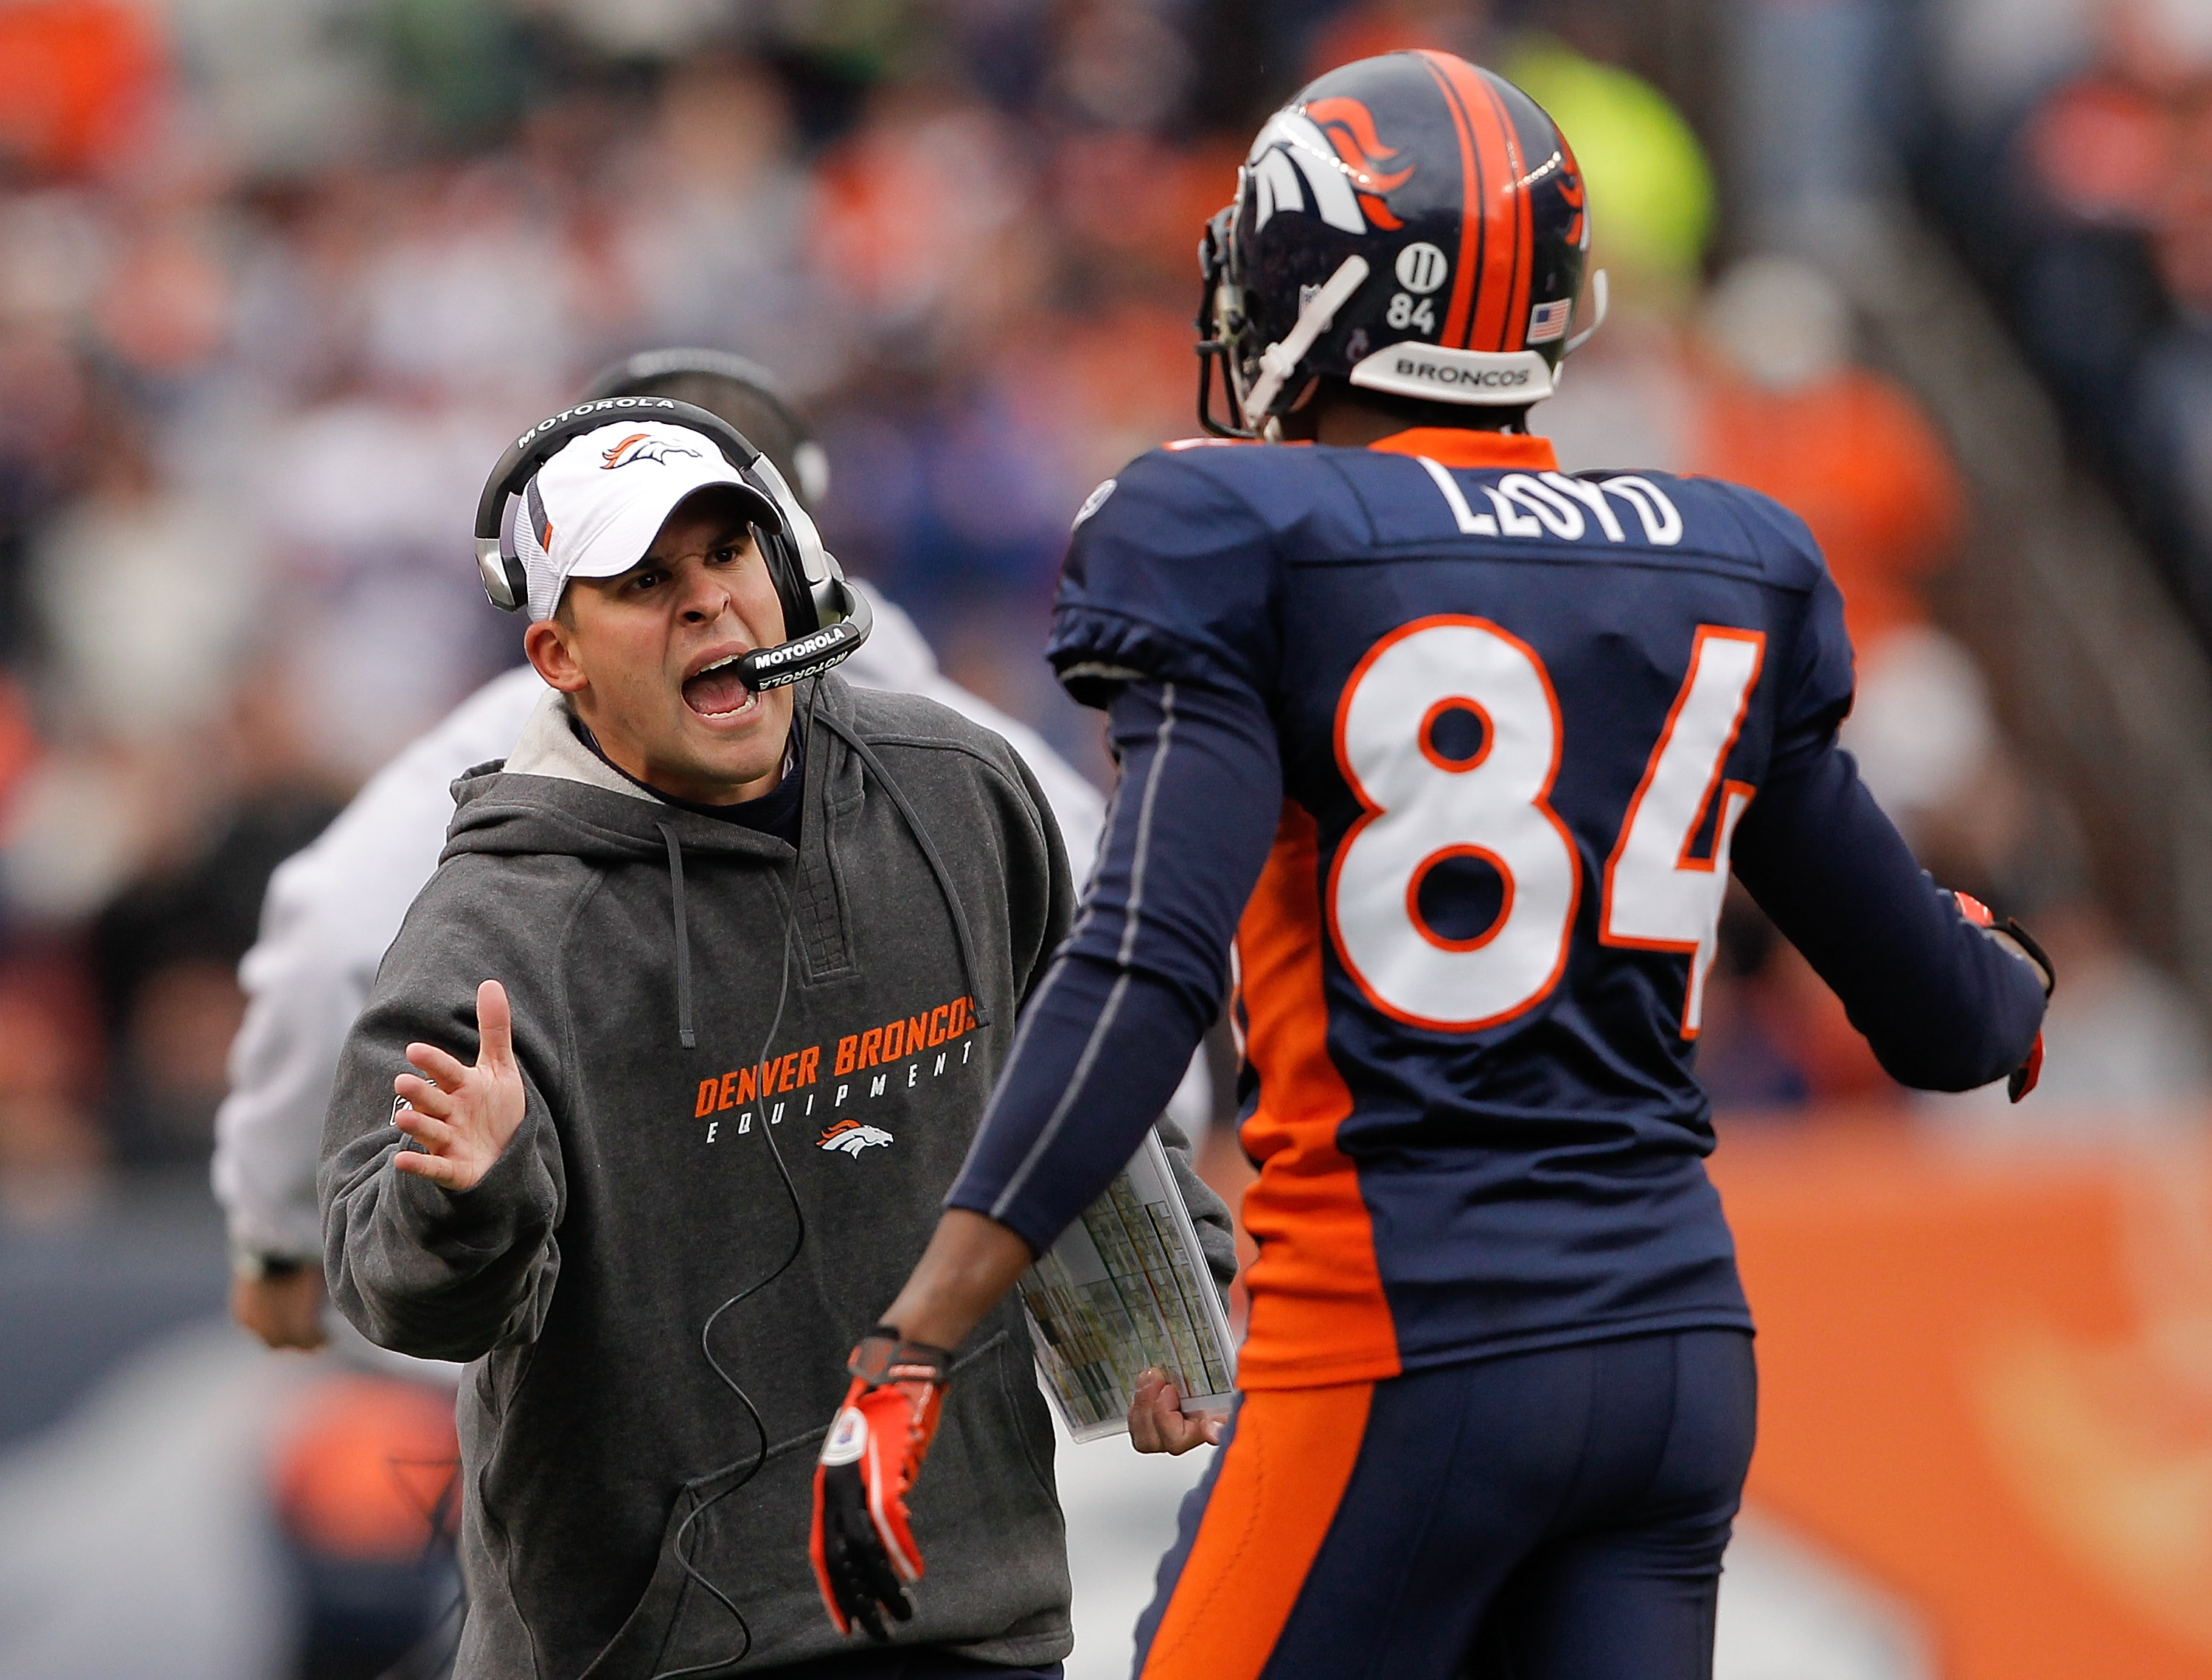 DENVER - NOVEMBER 28:  Head coach Josh McDaniels of the Denver Broncos celebrates a touchdown by Knowshon Moreno with wide receiver Brandon Lloyd #84 against the St. Louis Rams at INVESCO Field at Mile High on November 28, 2010 in Denver, Colorado. The Ra